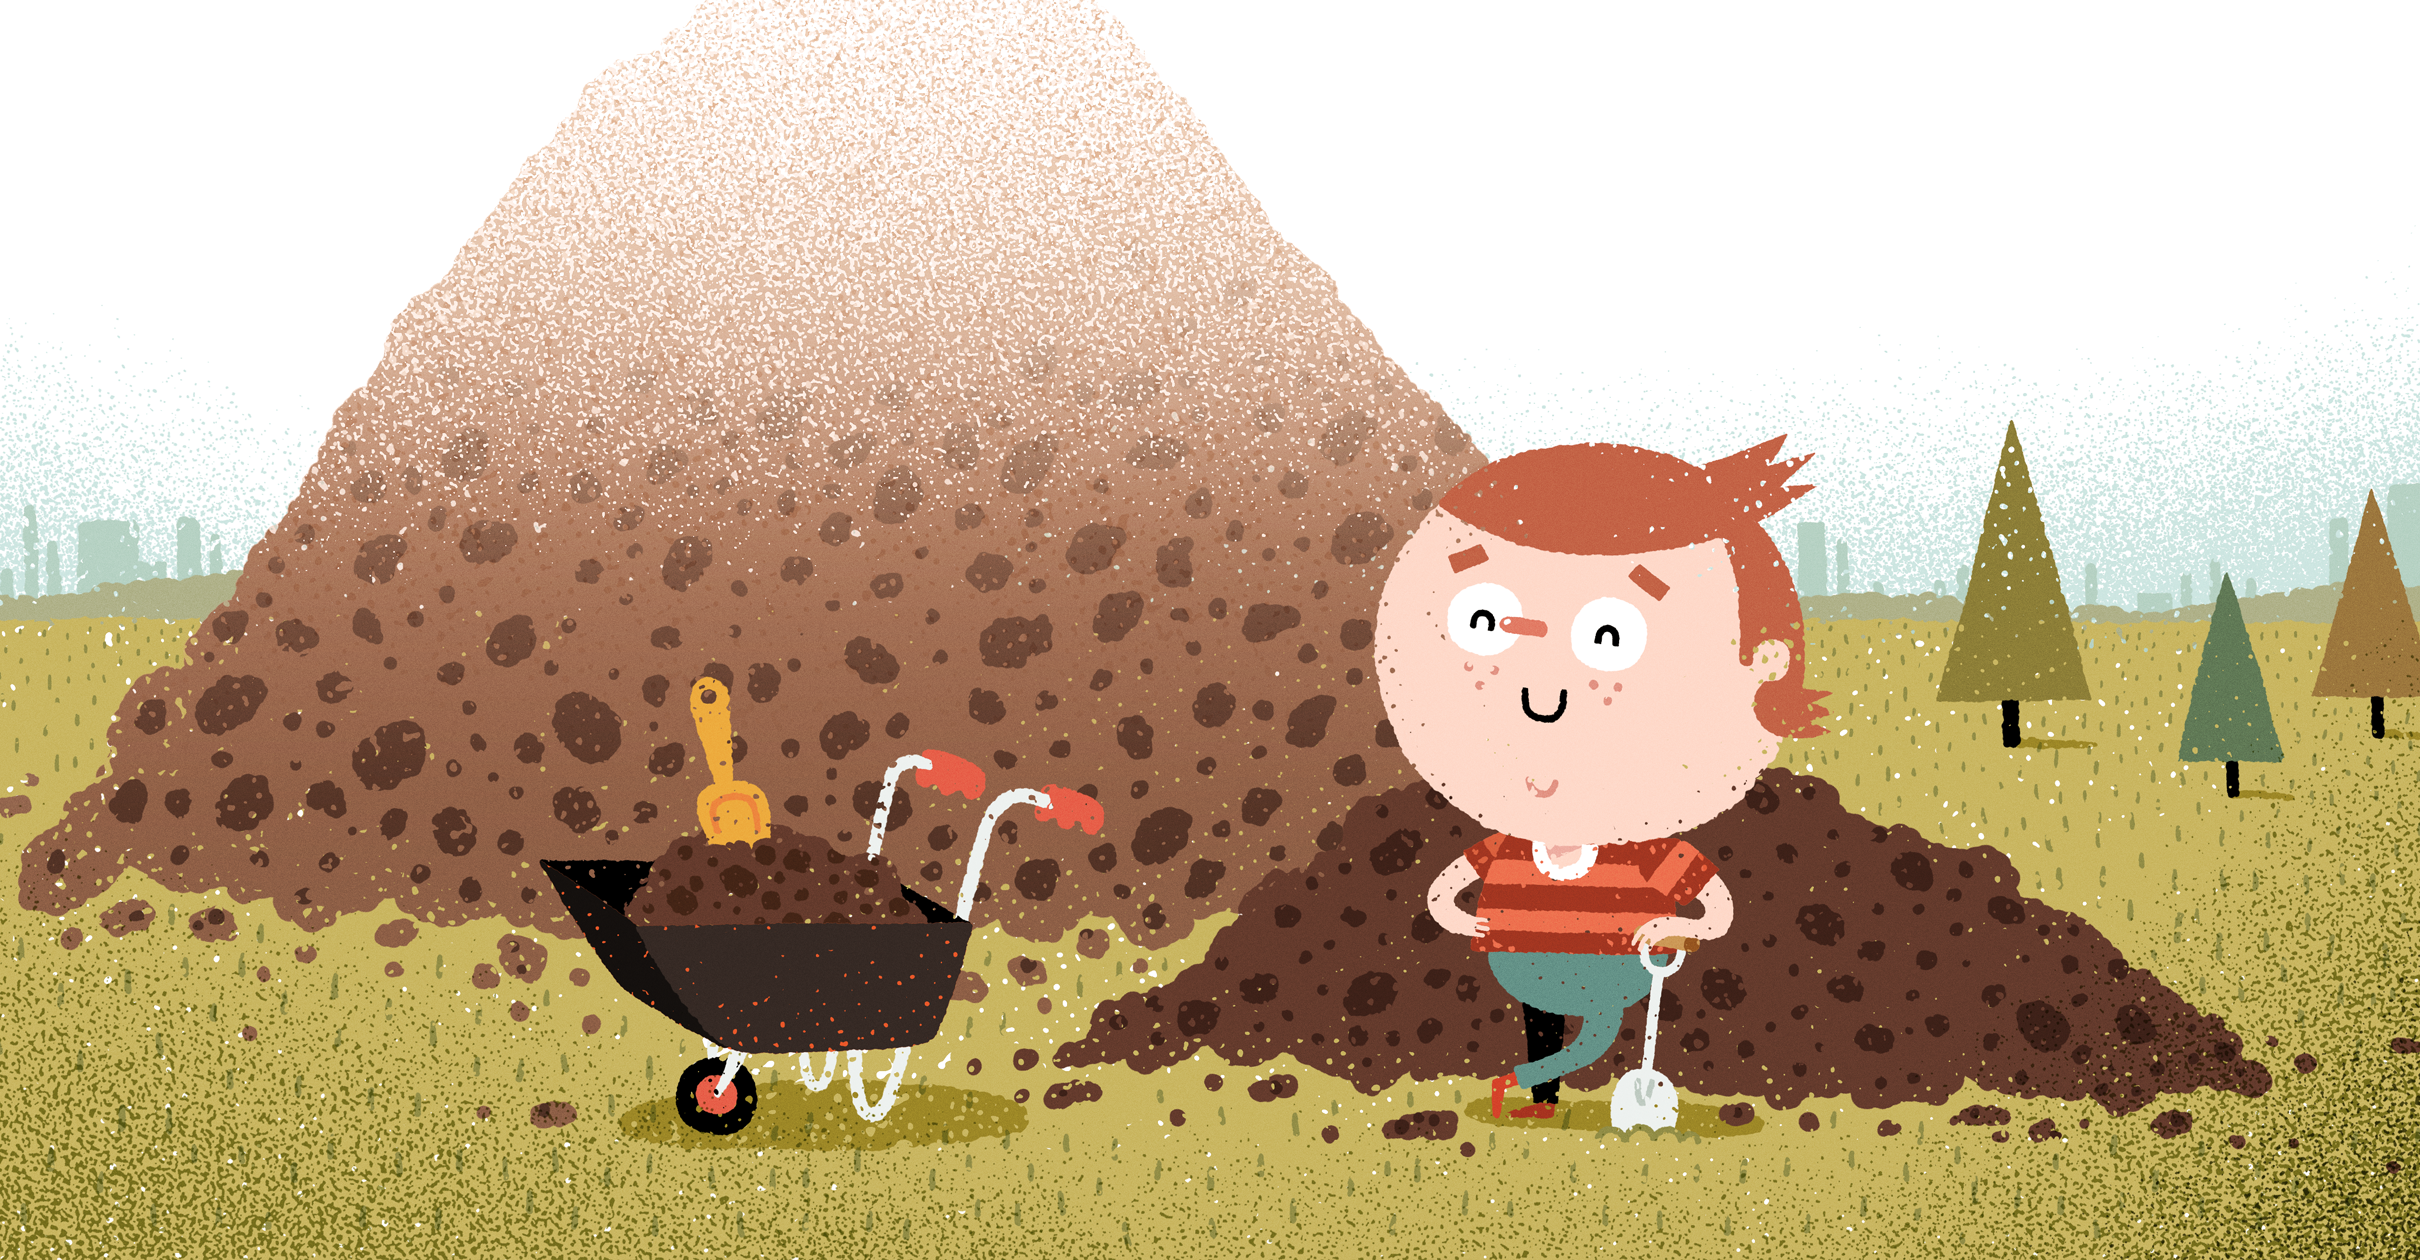 boy with dirt piles